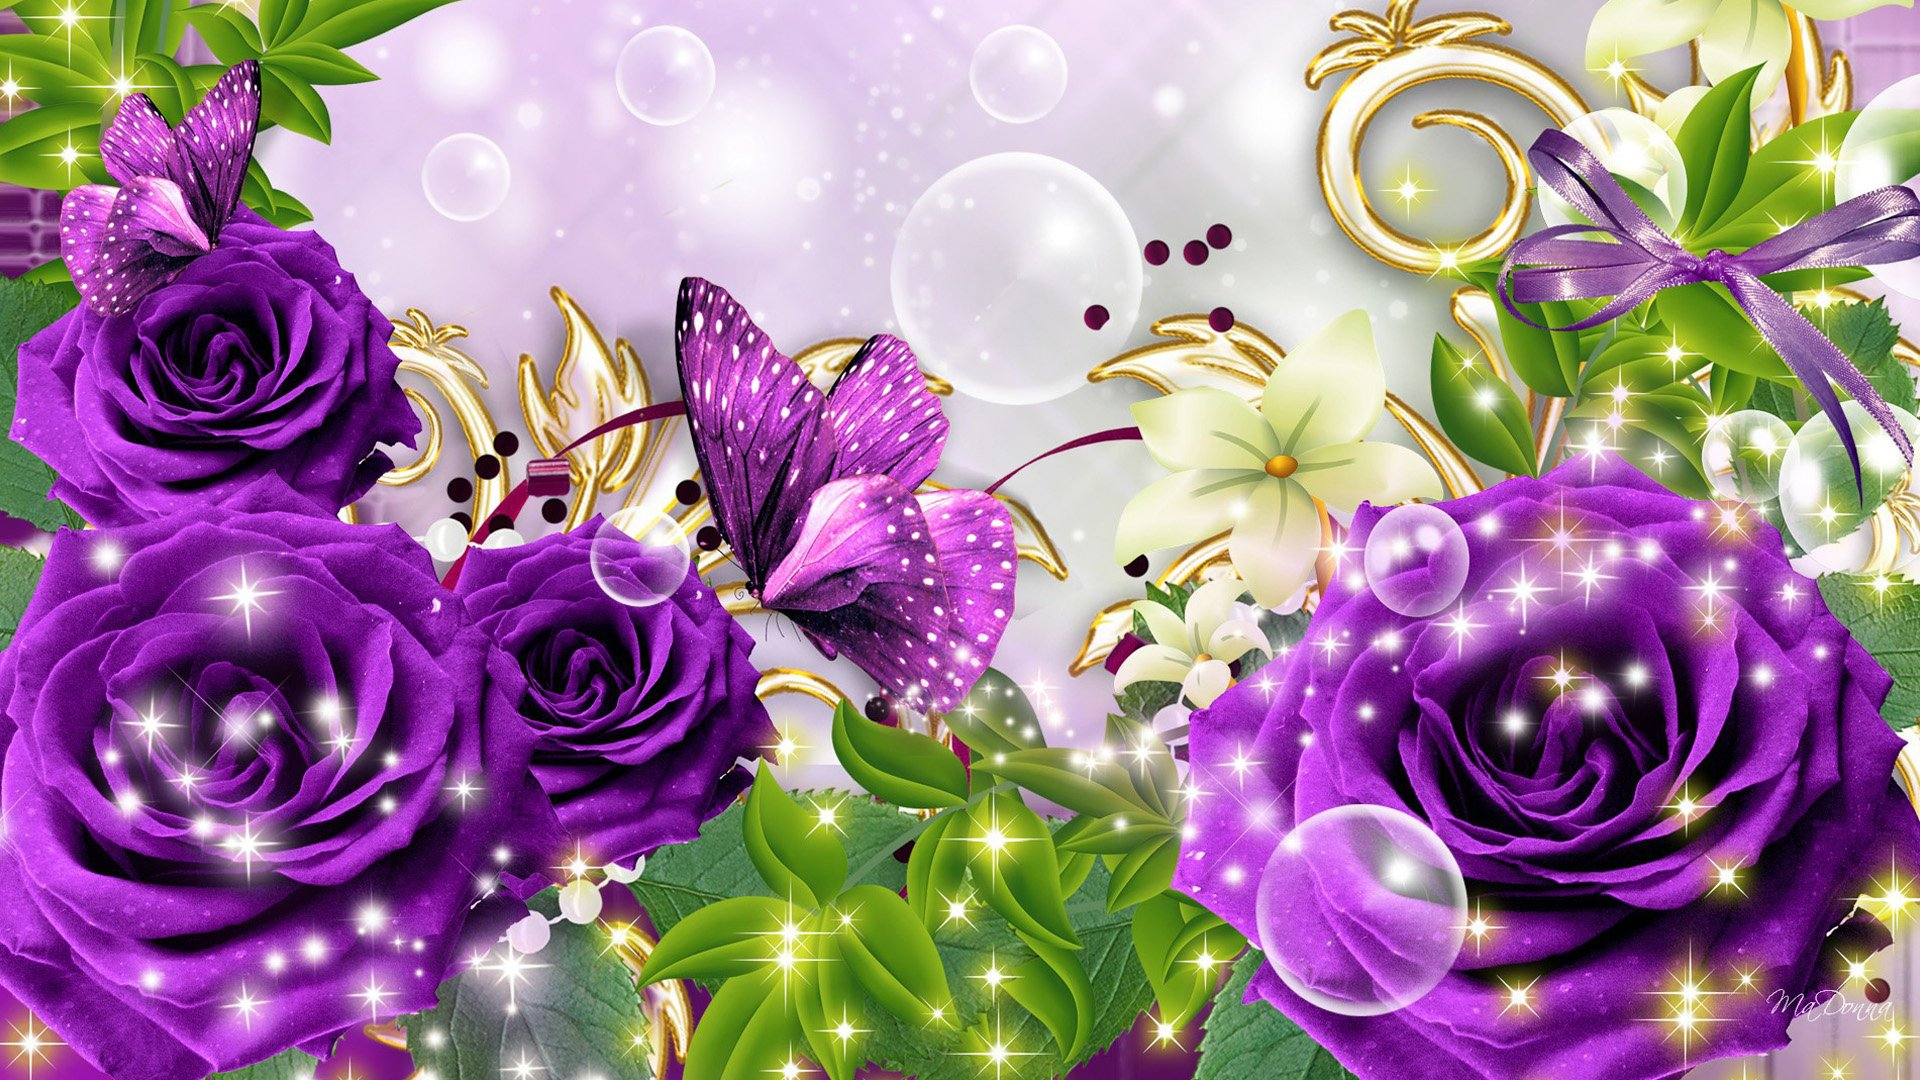 Purple Roses And Butterflies Hd Wallpaper Achtergrond 1920x1080